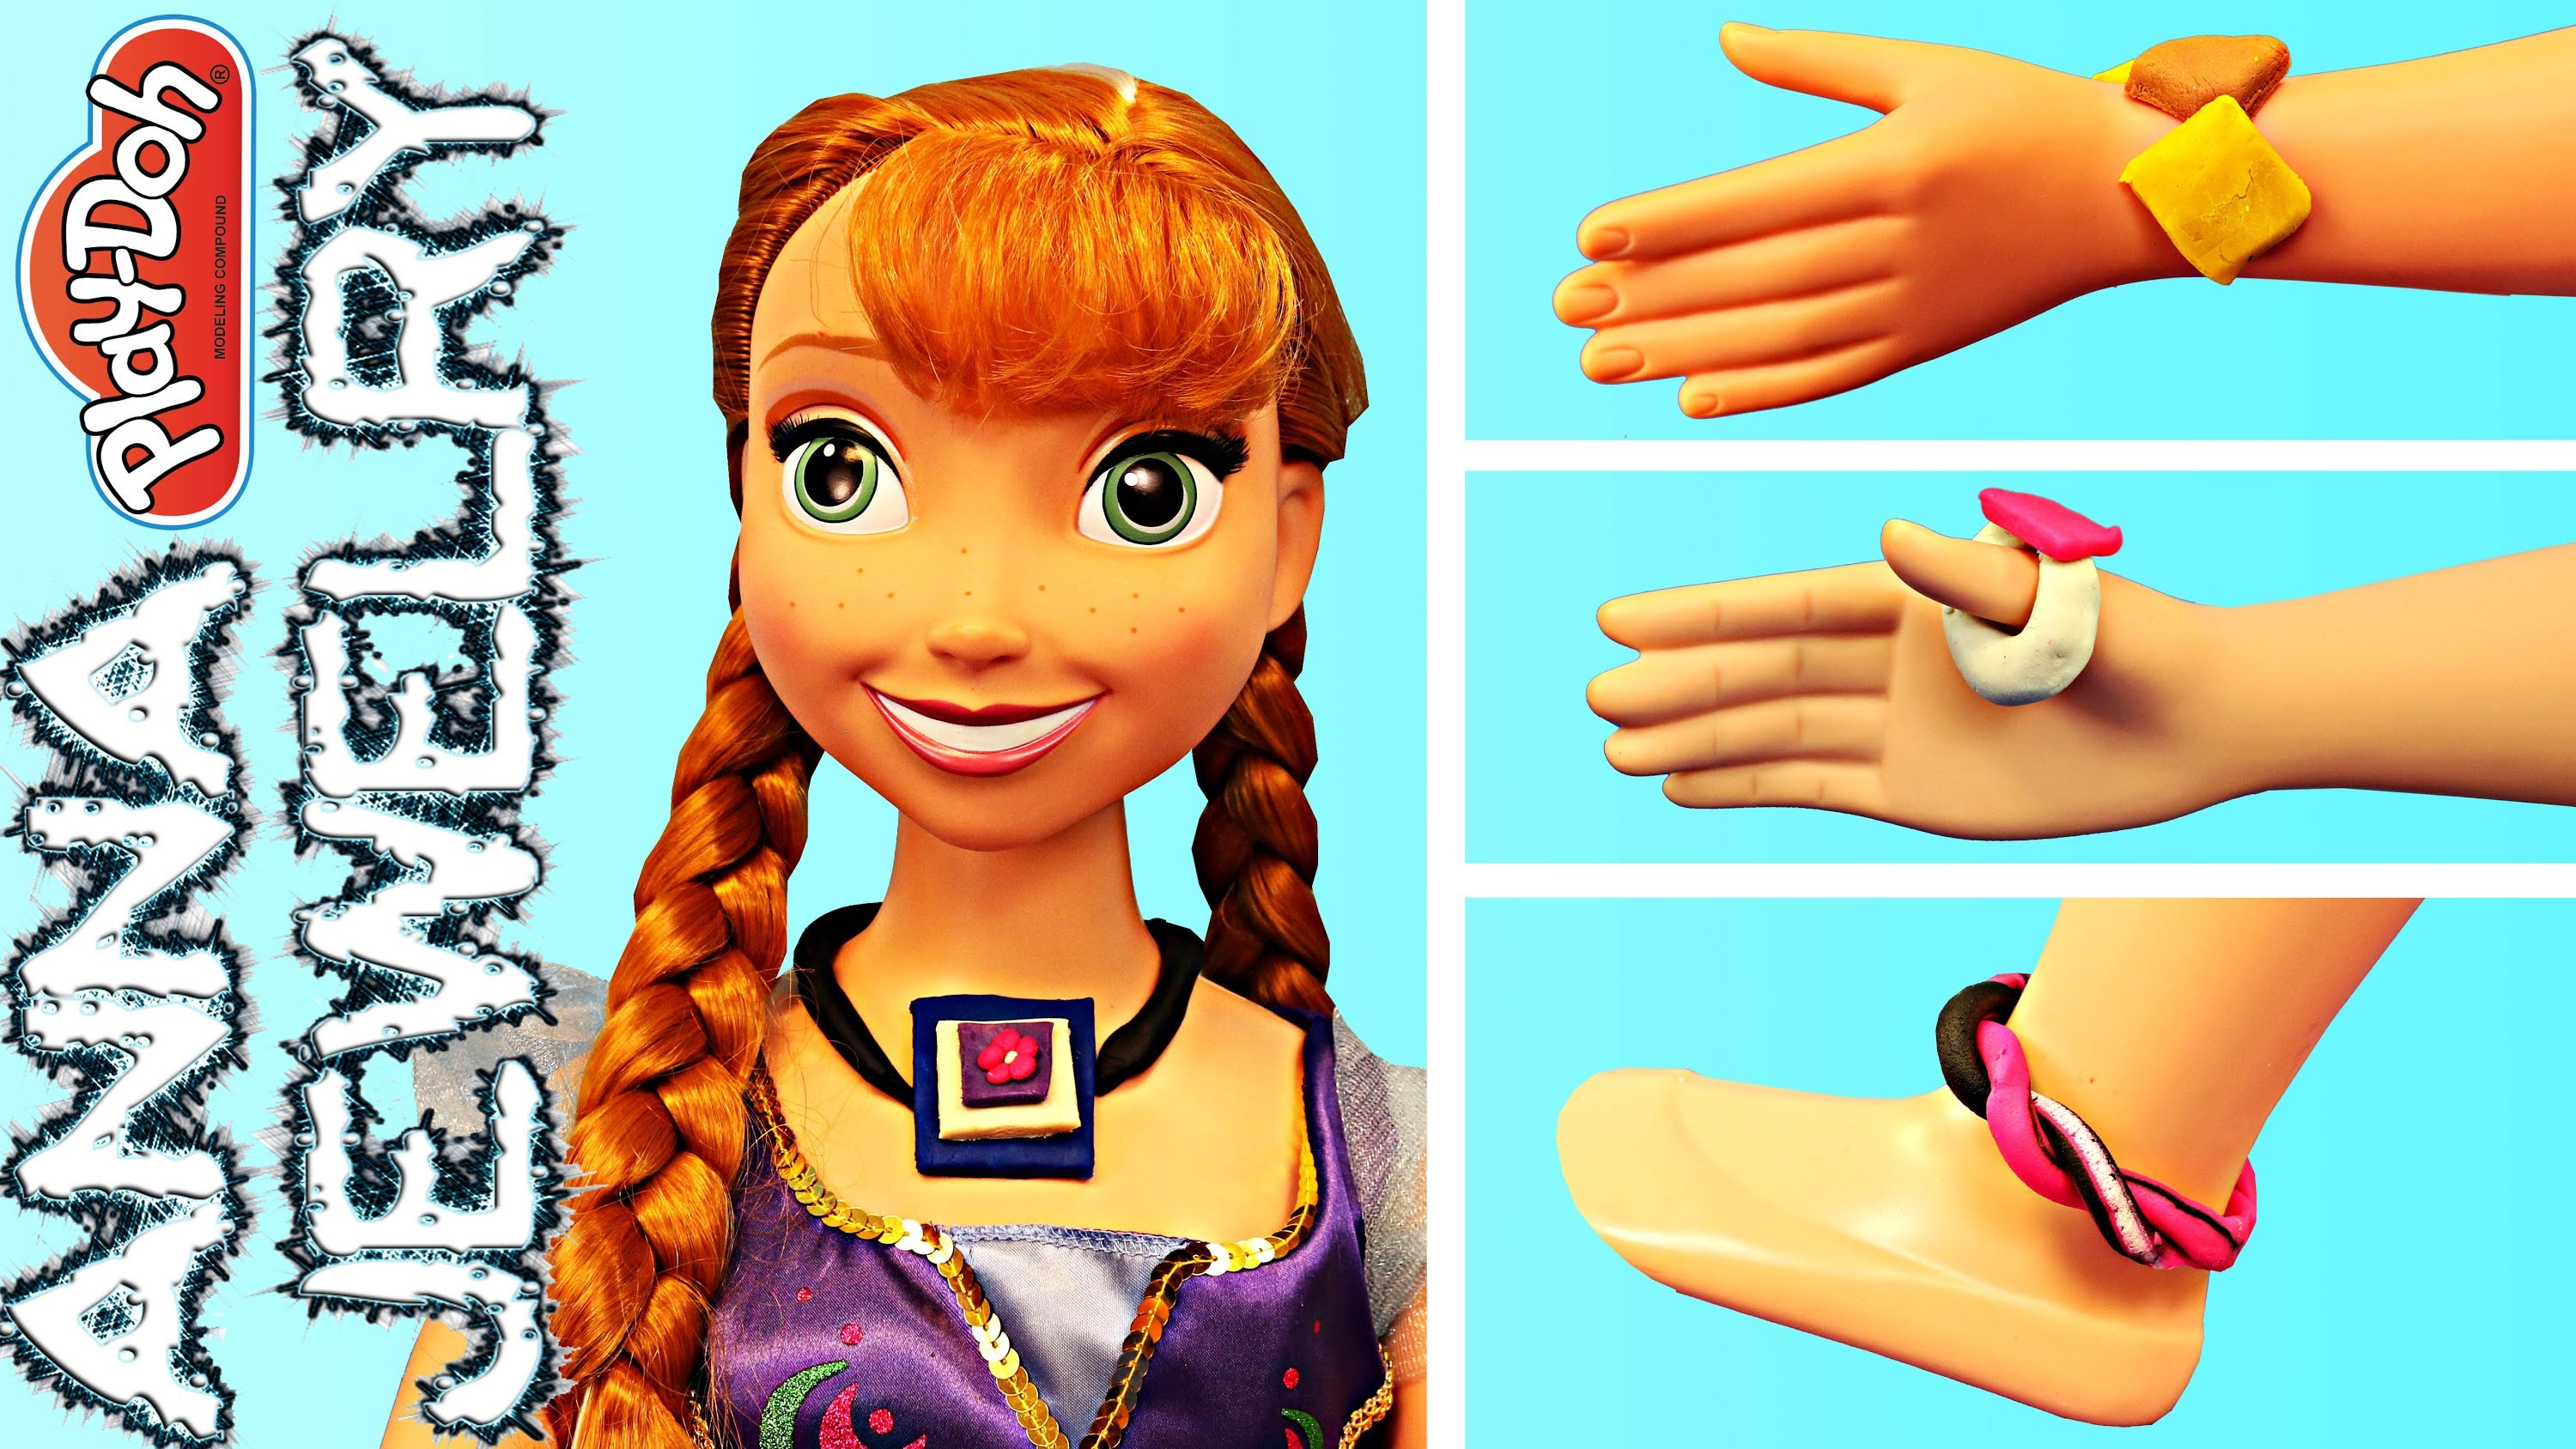 Frozen Disney My Size Anna Doll Making Play Doh Jewelry Necklace Bracelet and Anklet Tutorial